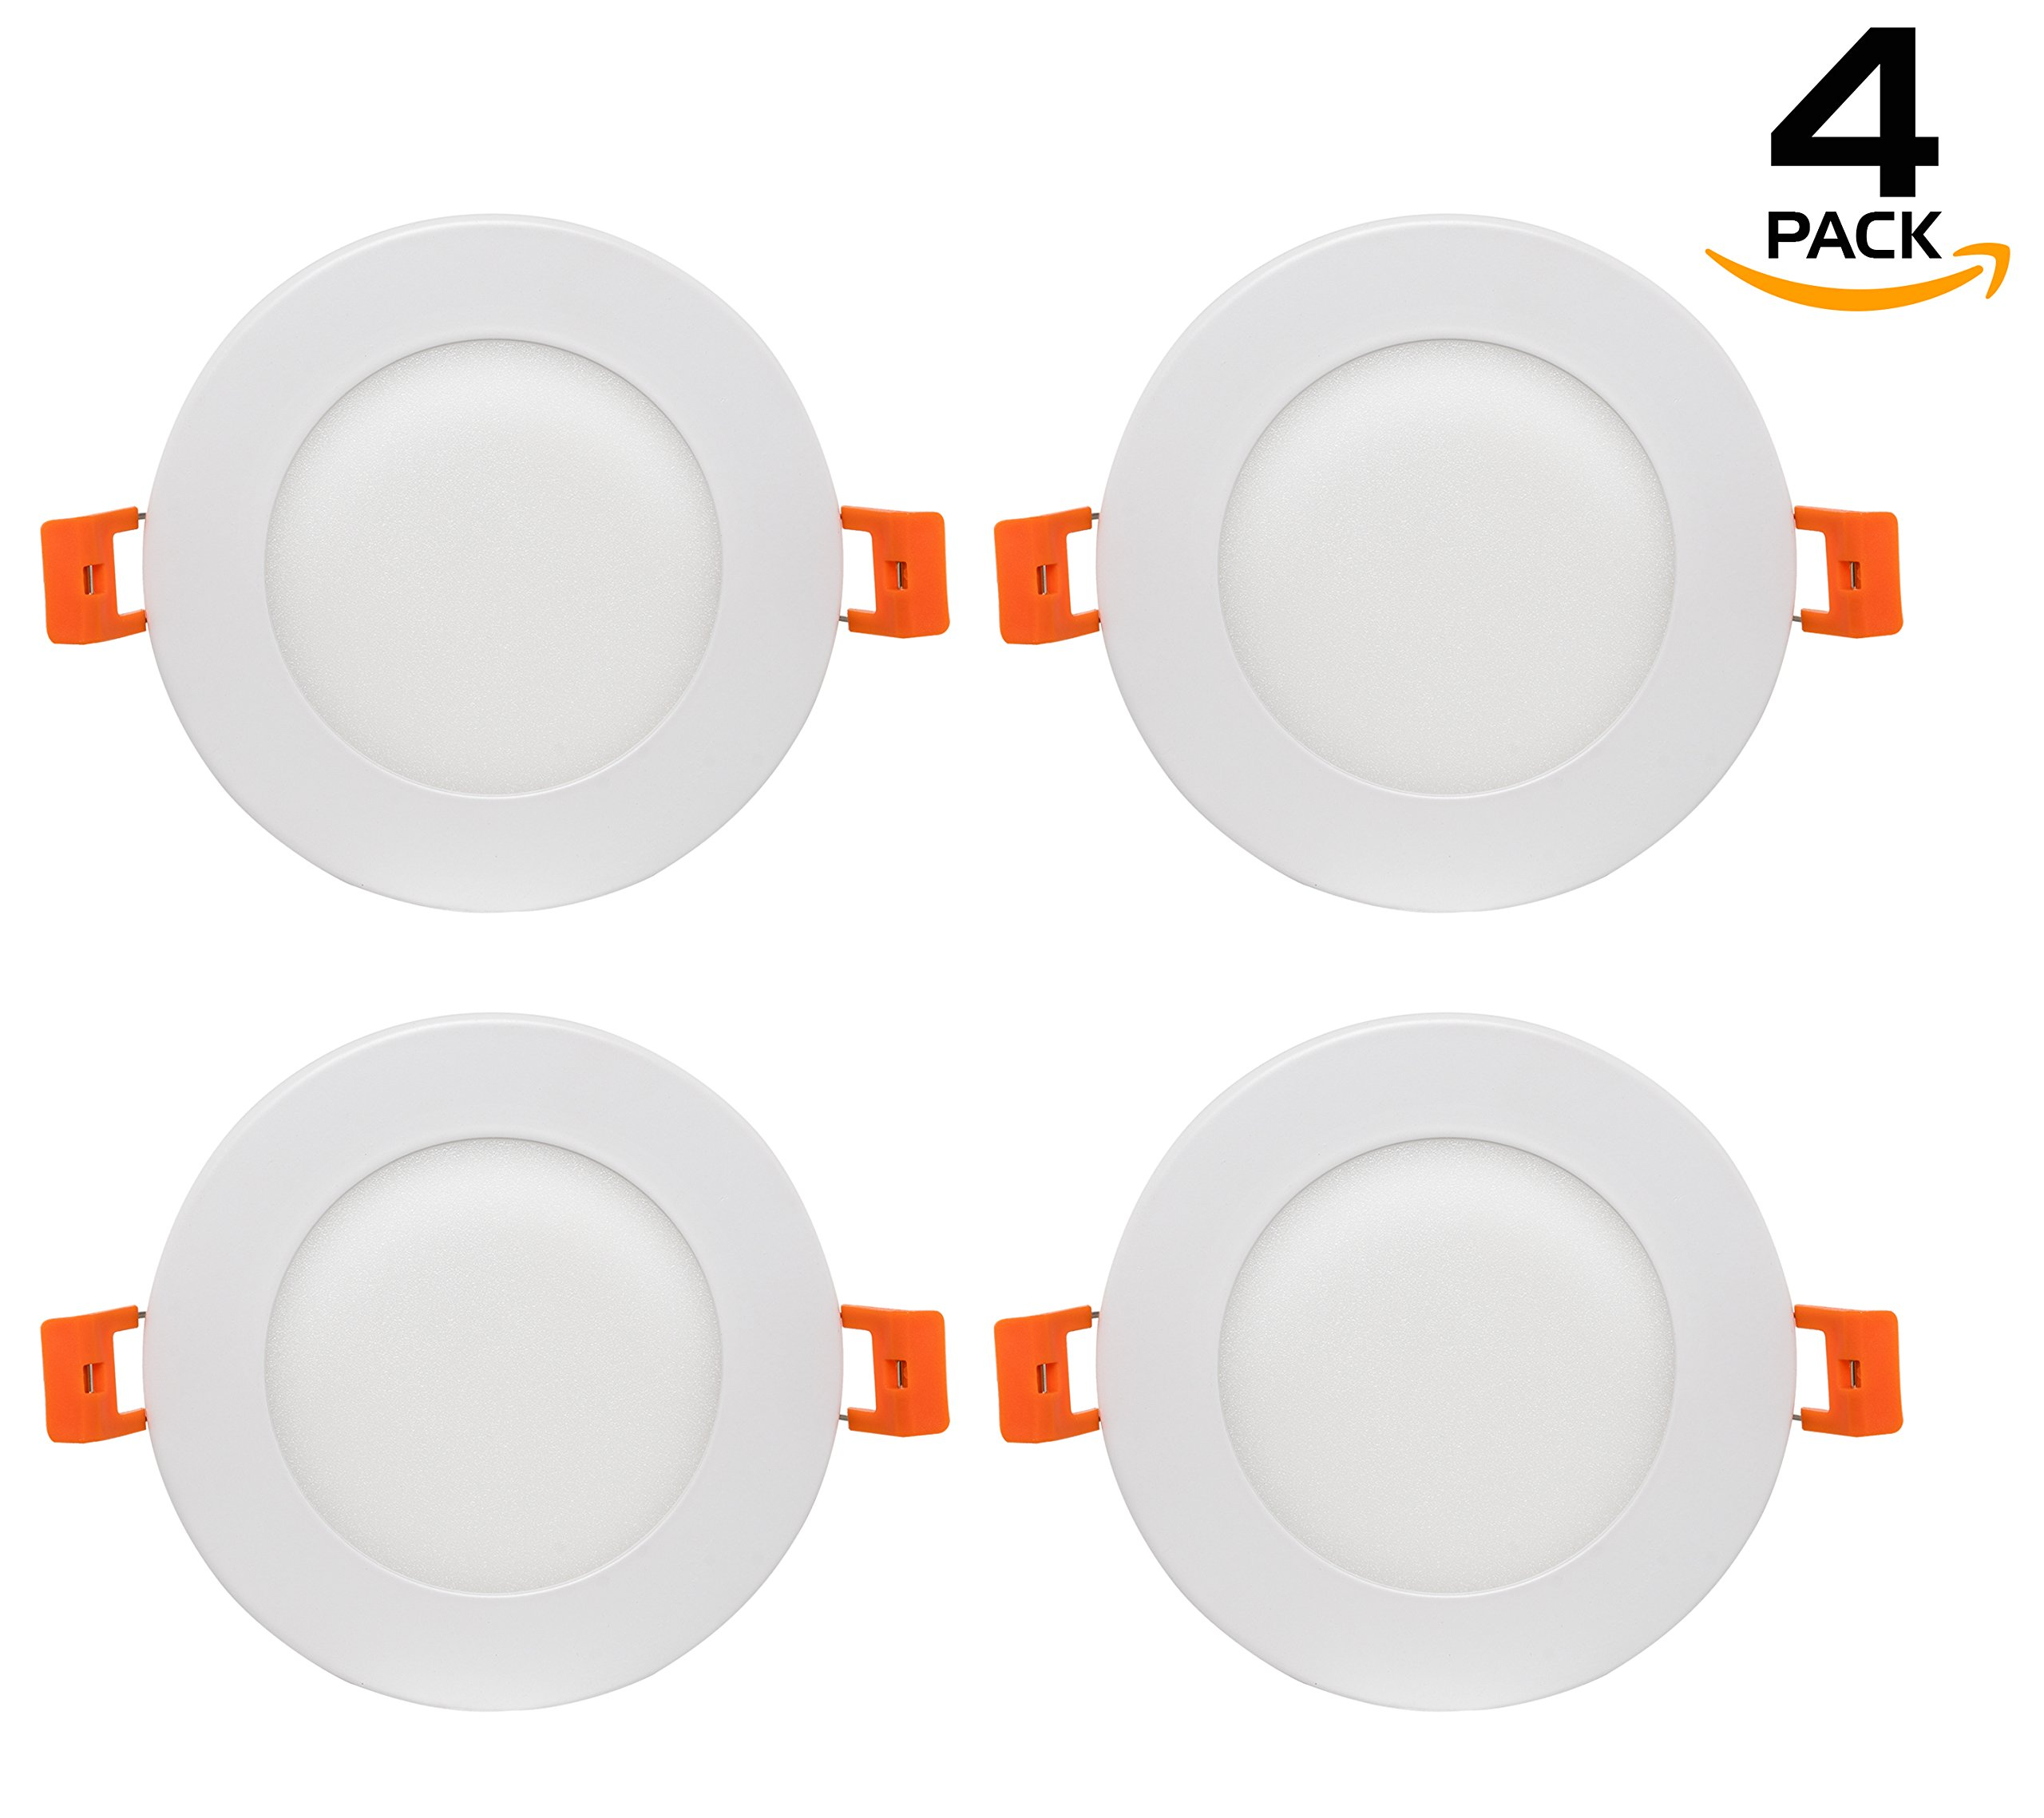 Westgate Lighting 9W 4'' inch Ultra Thin Slim LED Recessed Light - Dimmable Retrofit Downlight Smooth Trim - Junction Box Included - No Housing Required - Ceiling Lights (4 Pack, 3000K Soft White)